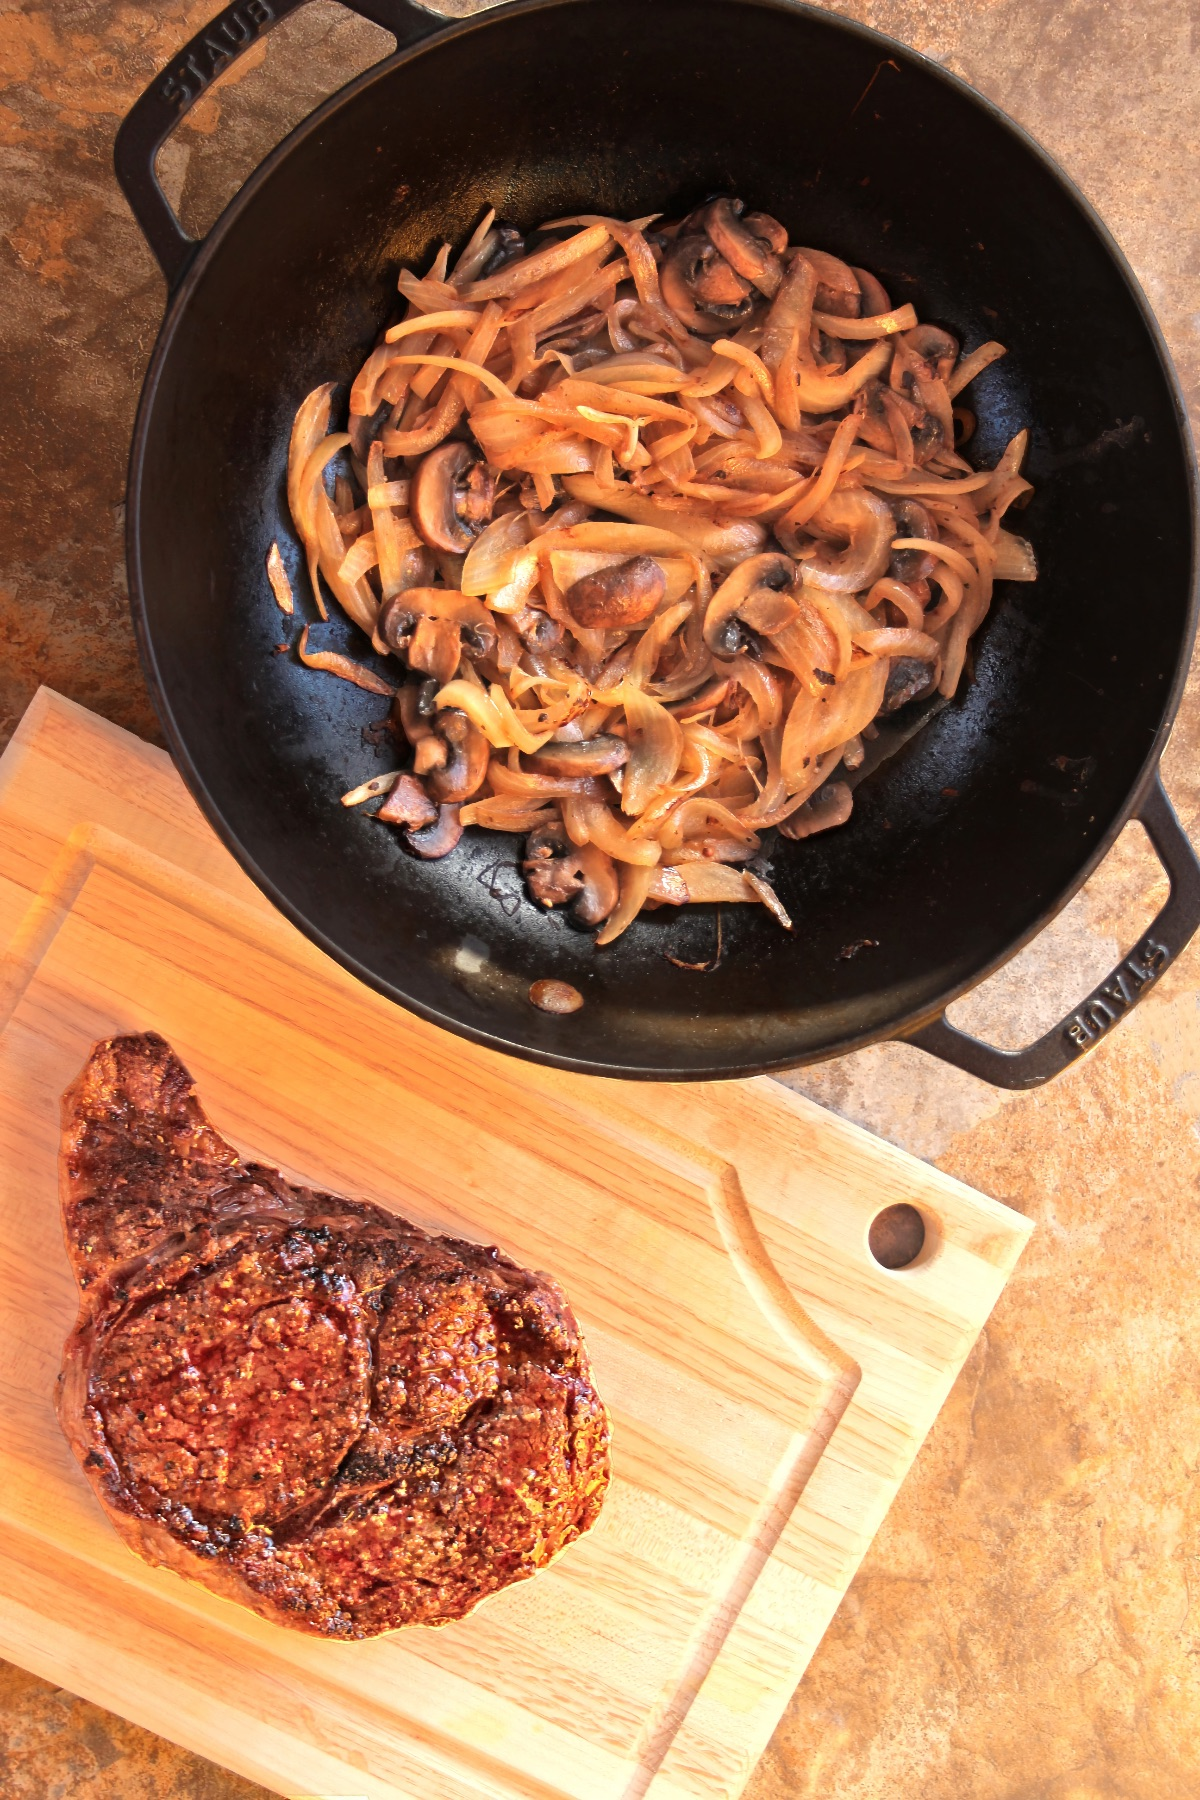 Grilled Ribeye Steak with Caramelized Mushrooms and Onions: the mushrooms and onions are finished in the skillet, which sits just behind a huge ribeye steak resting on a wooden cutting board.